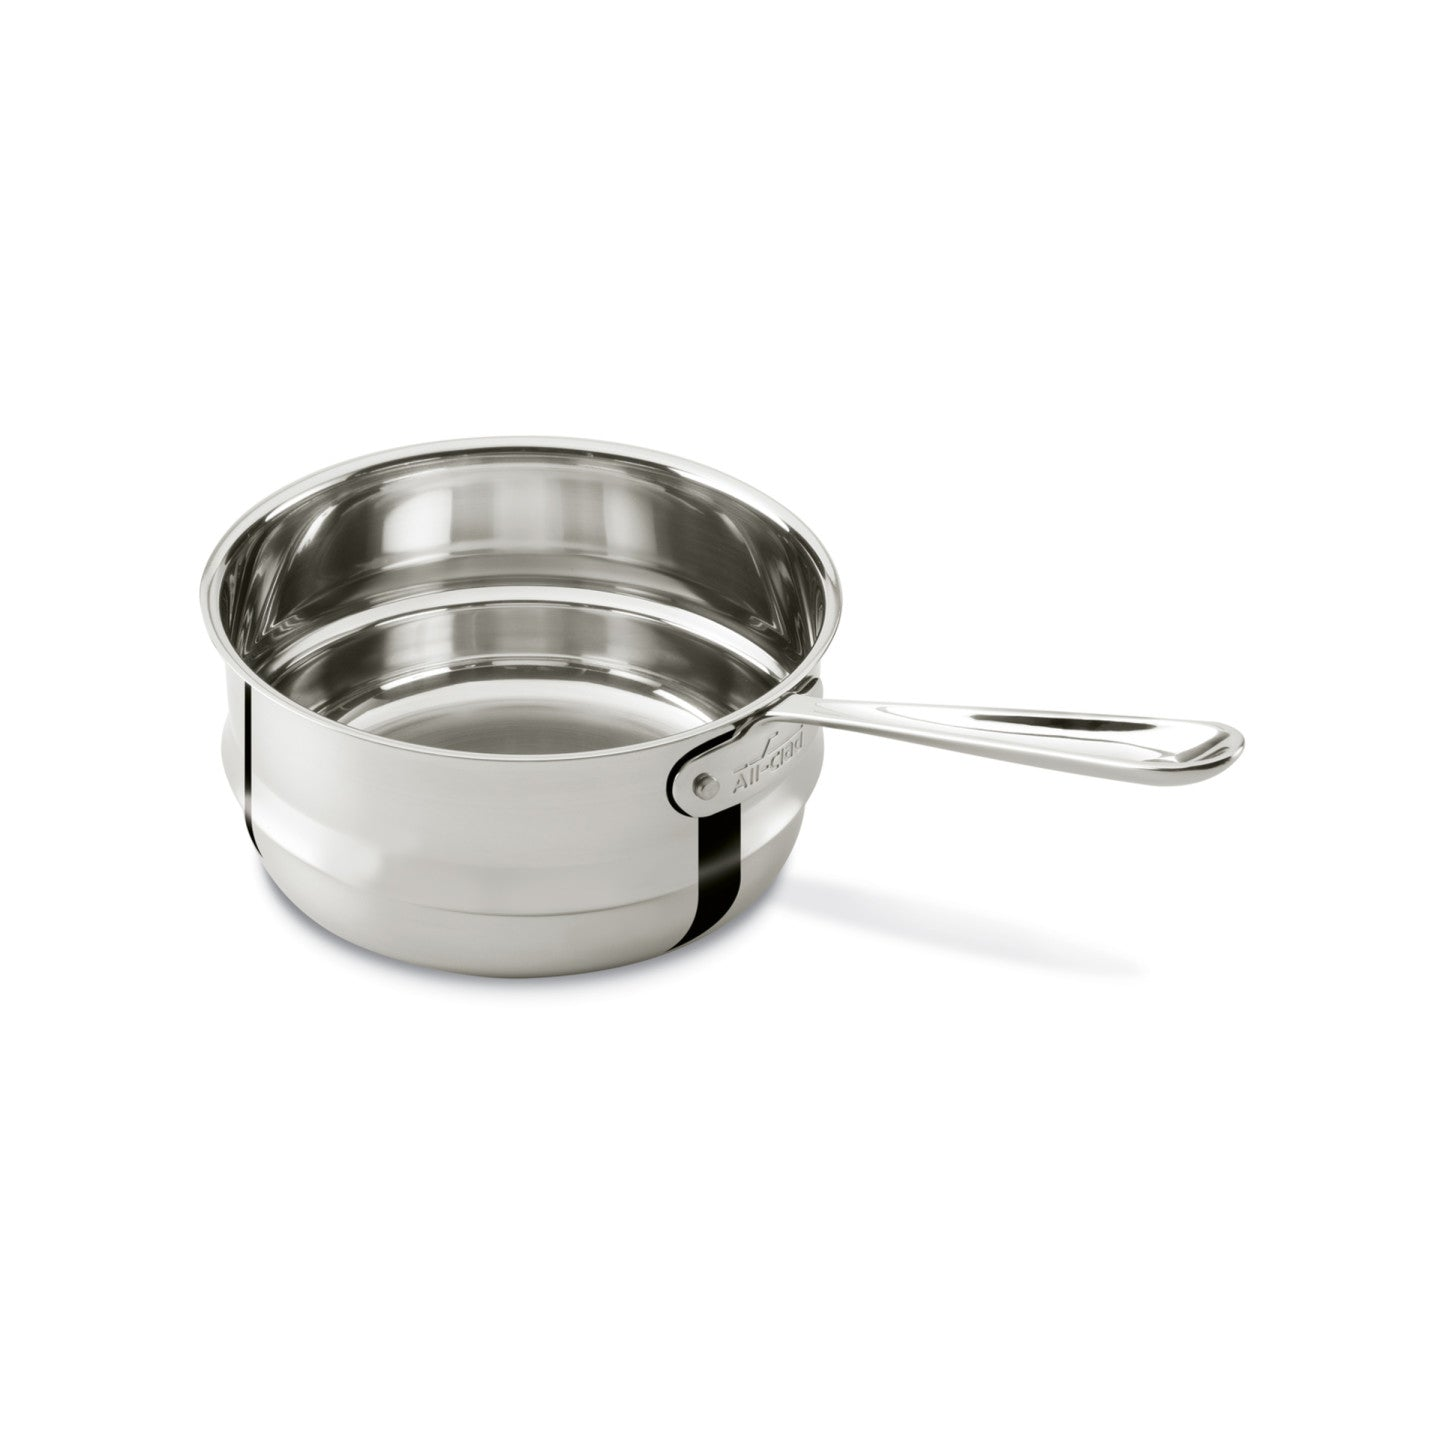 All-Clad Stainless Steel Steamer Insert with Long Handle / 3Qt